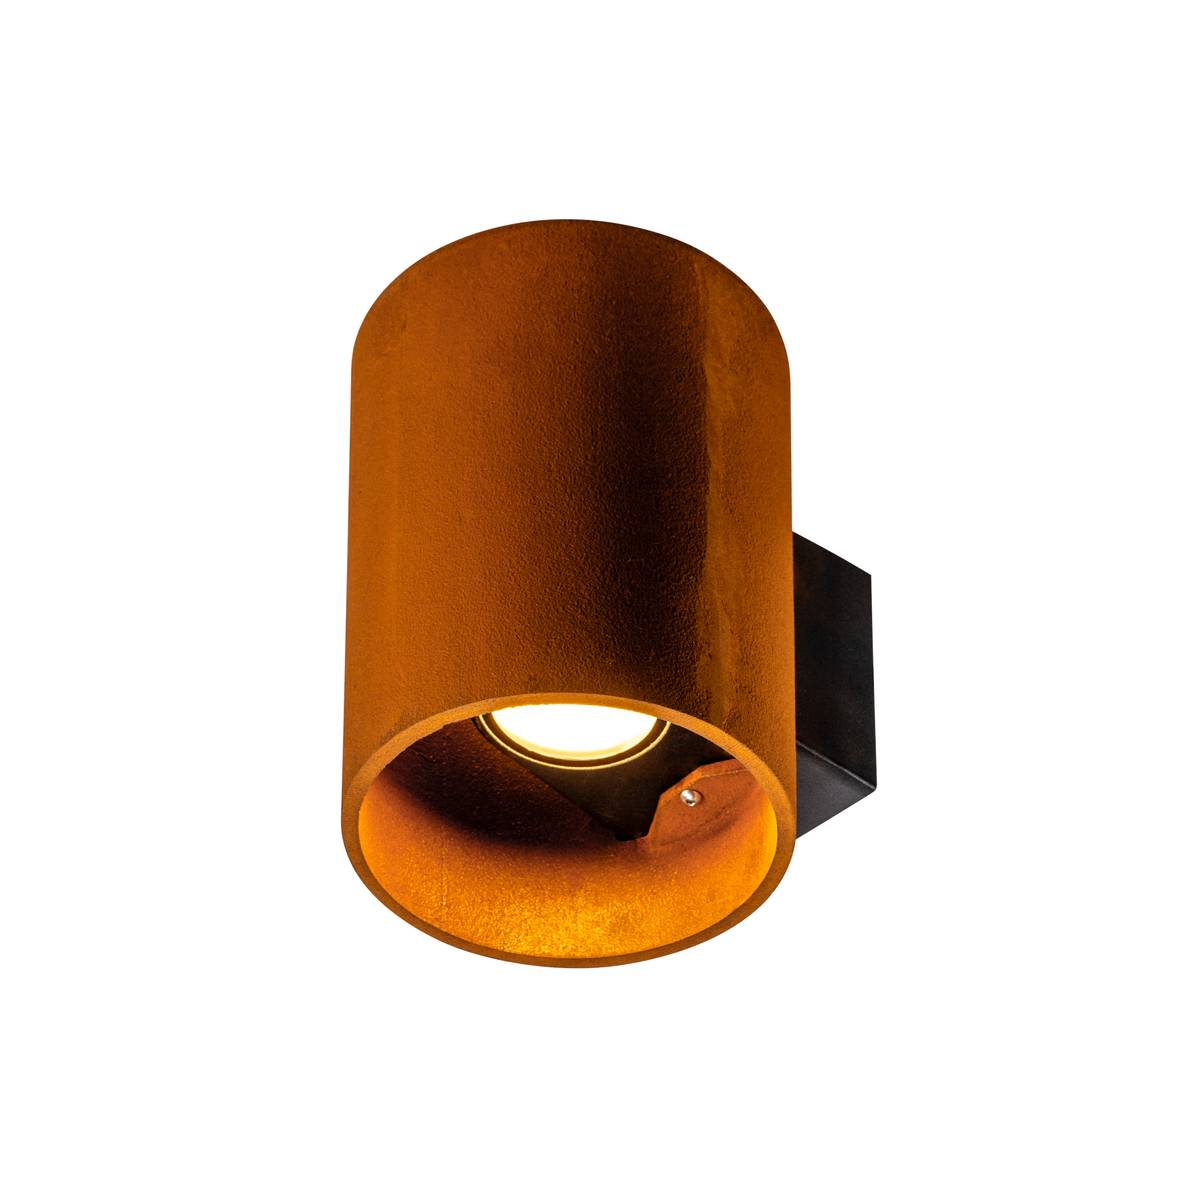 SLV buiten wandlamp Rusty Up/Down rond - roest